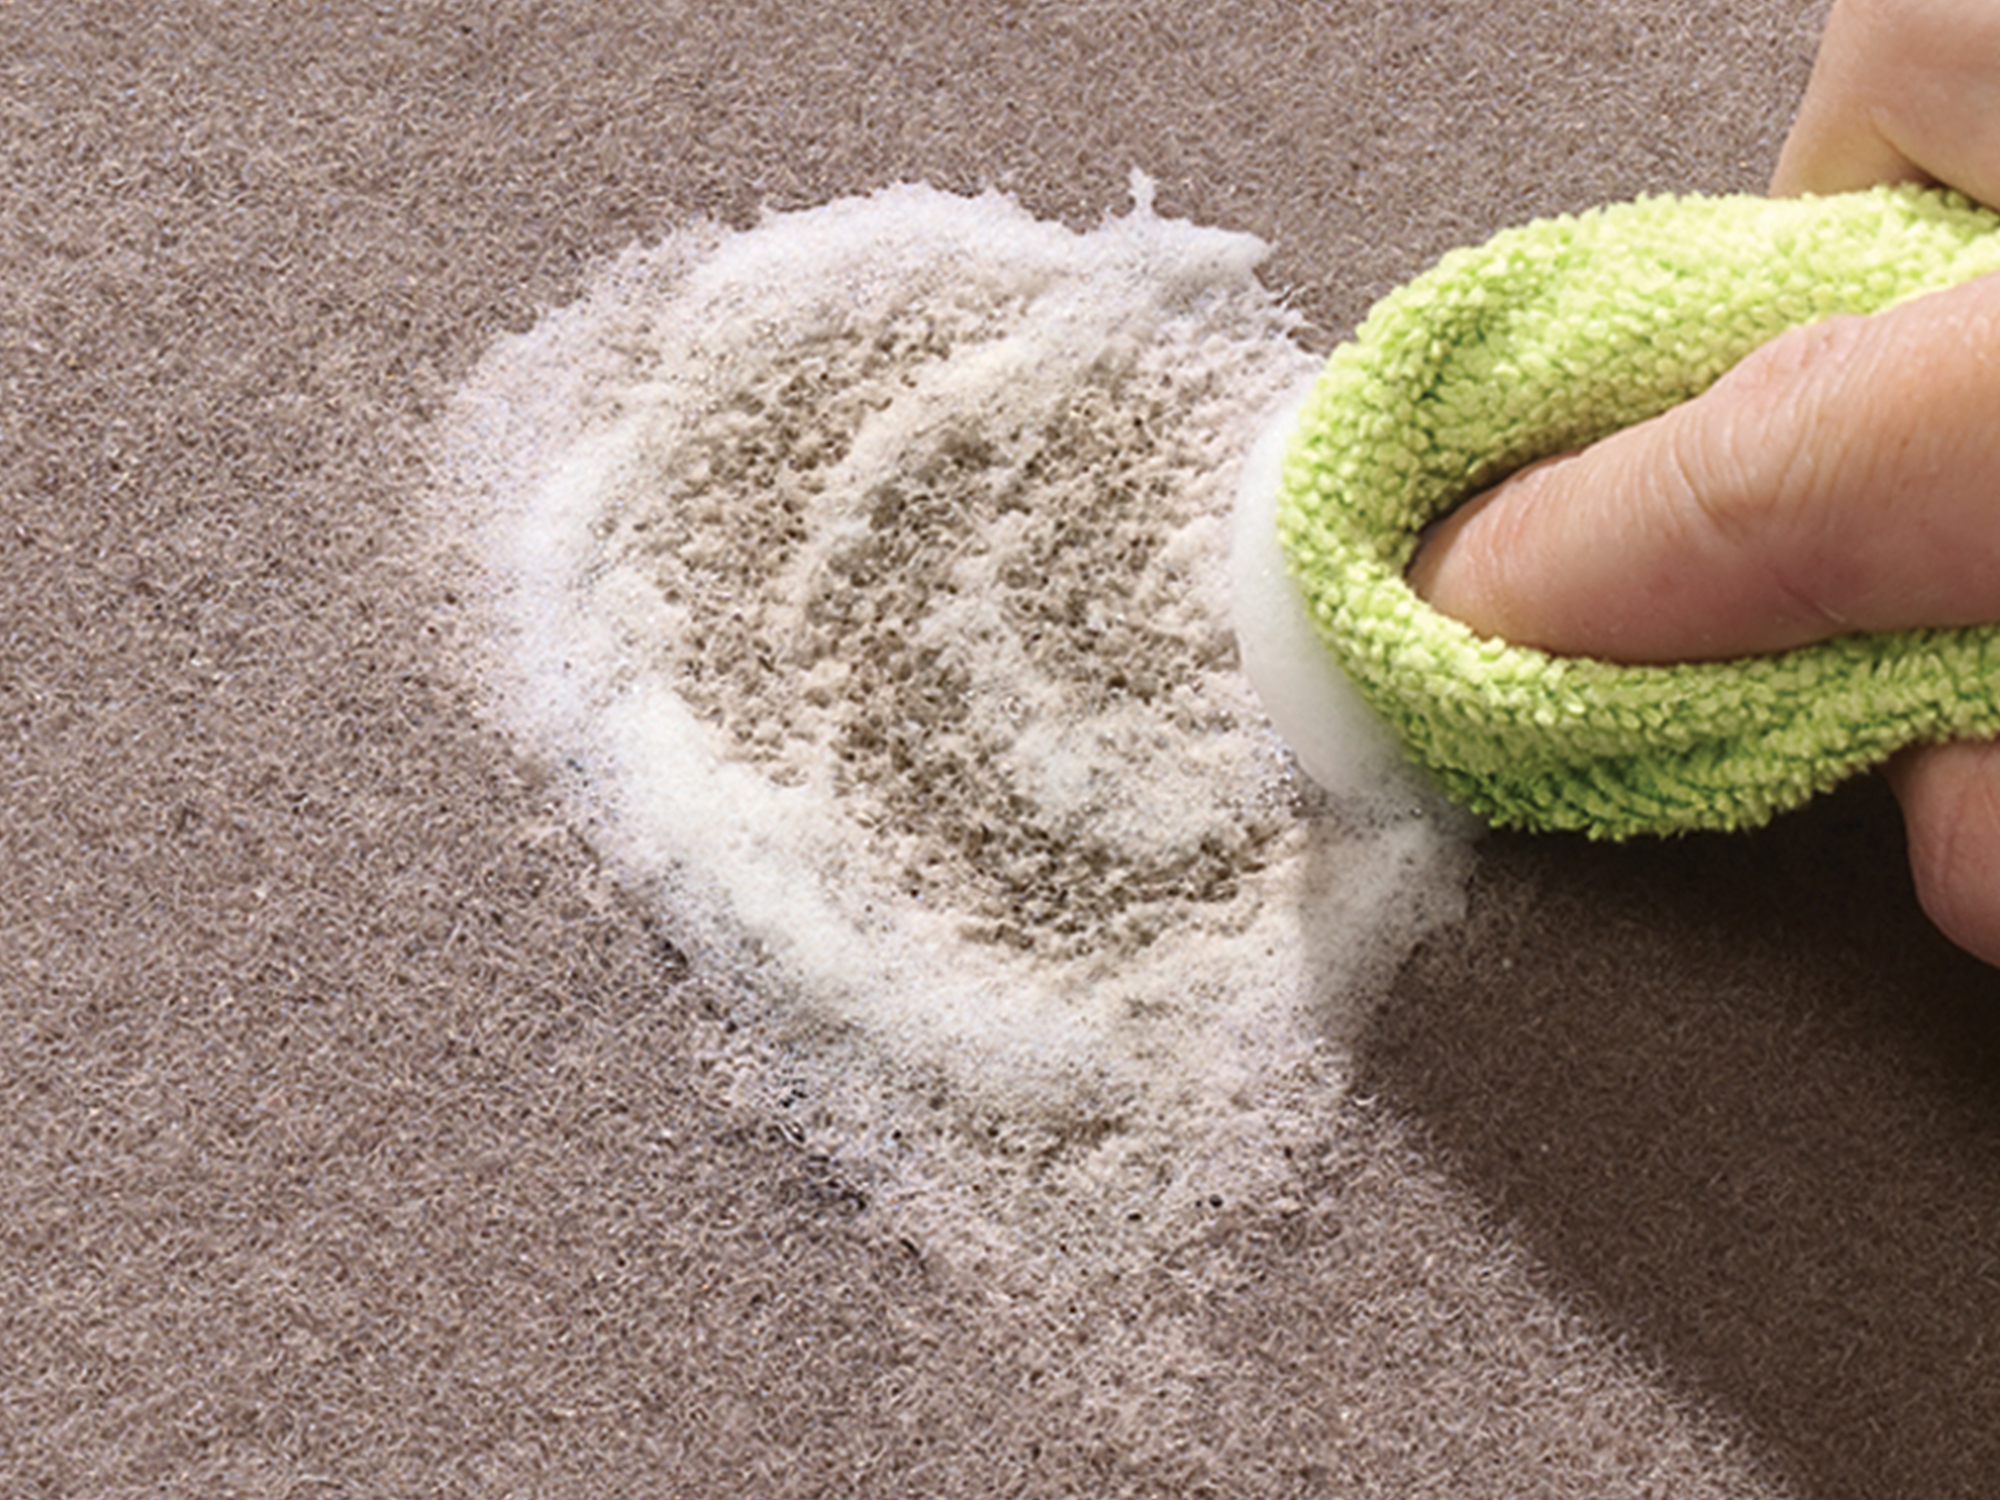 Carpet Cleaner with SpotTech quickly and easily removes stains from your automotive carpet, and helps prevent future stains.